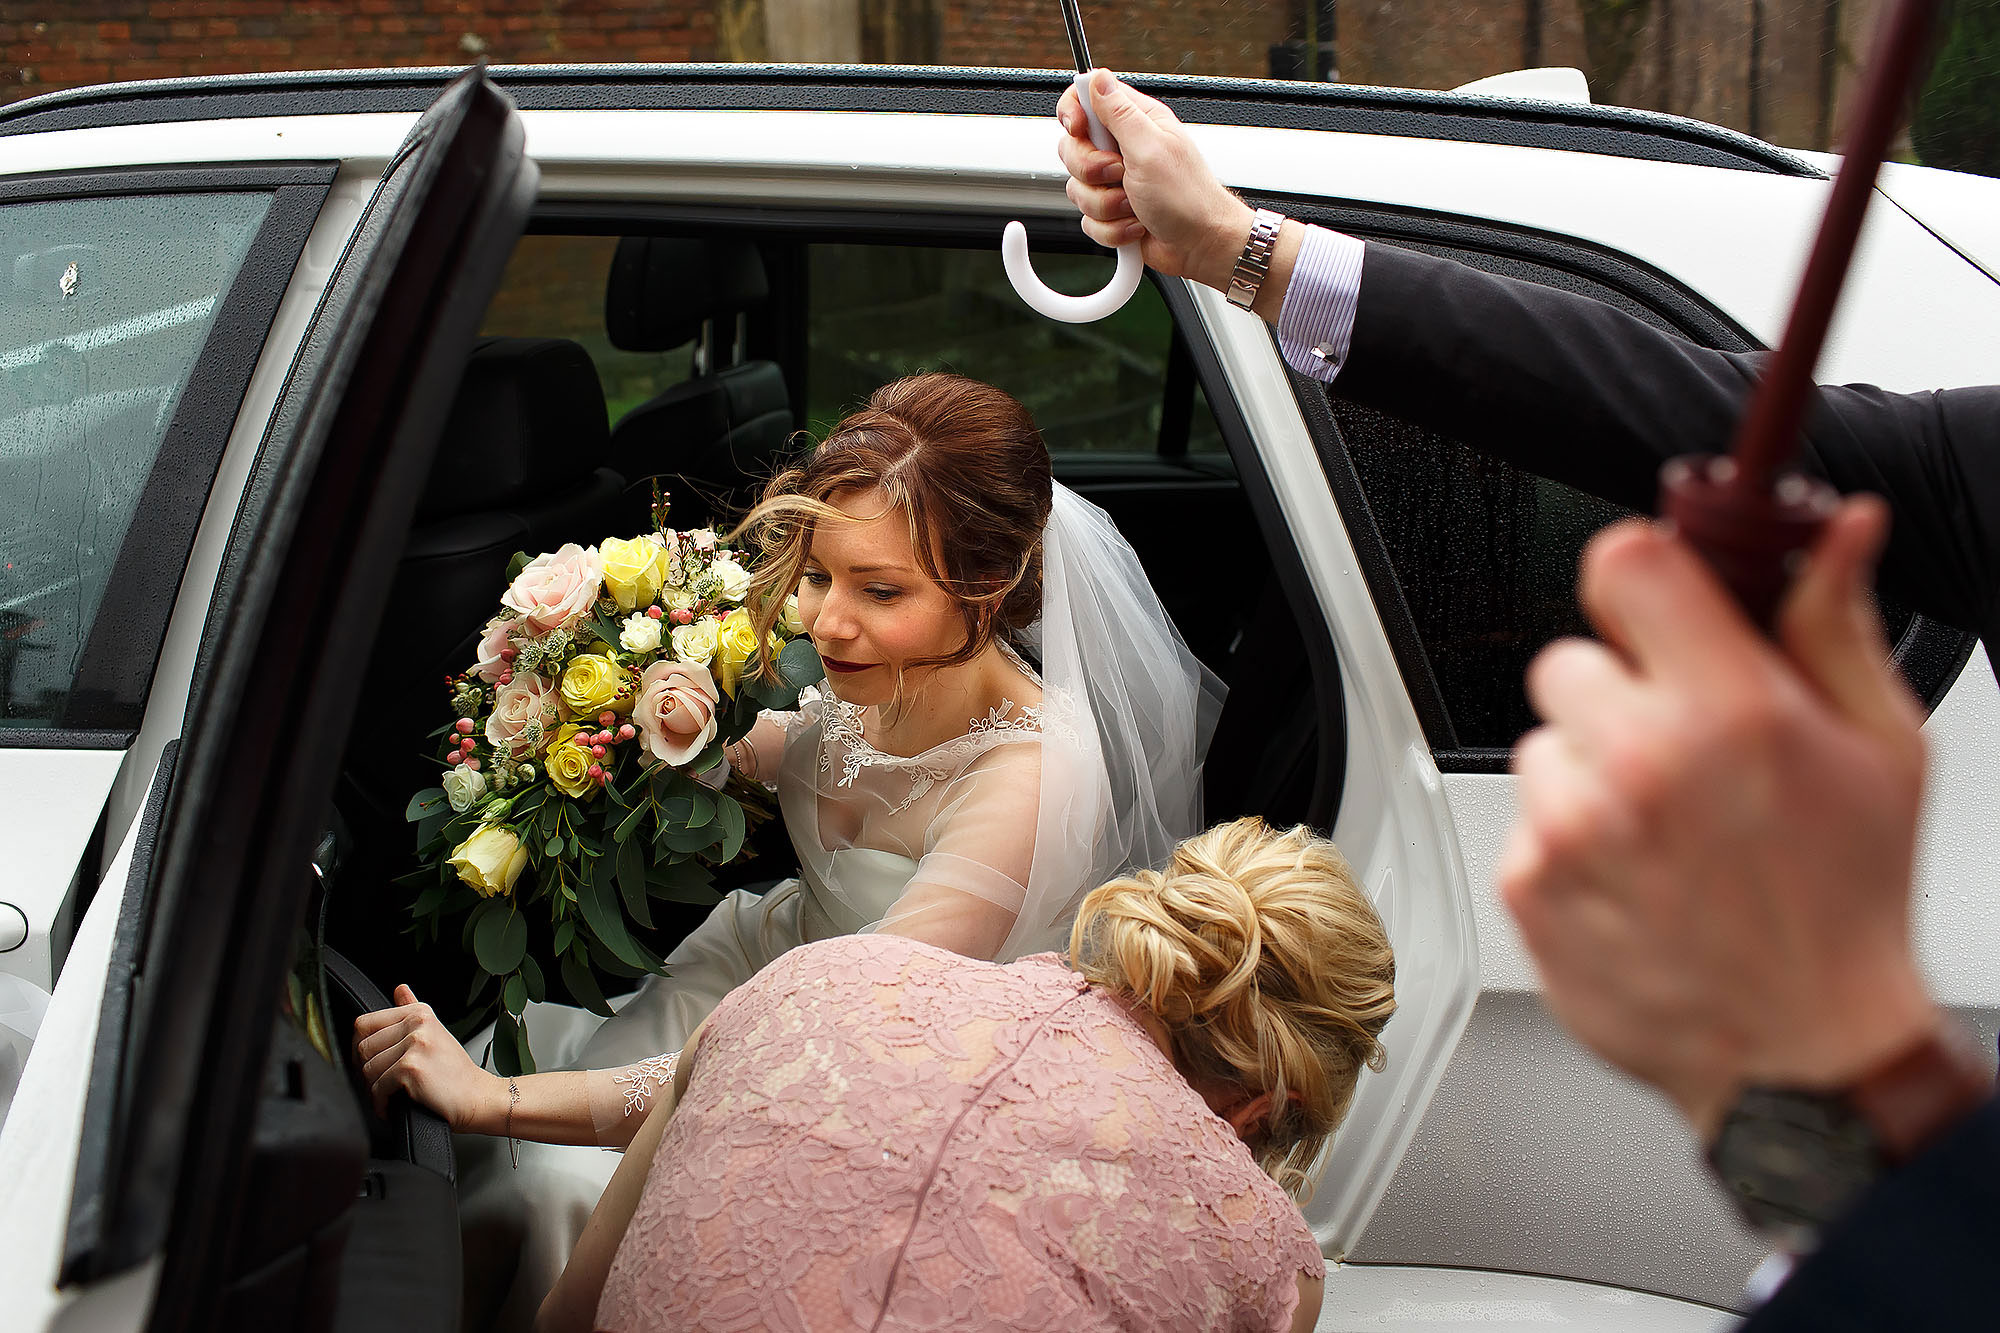 Bride stepping out of the wedding car at Stonyhurst as people hold umbrellas | Mitton Hall wedding photographs by Toni Darcy Photography